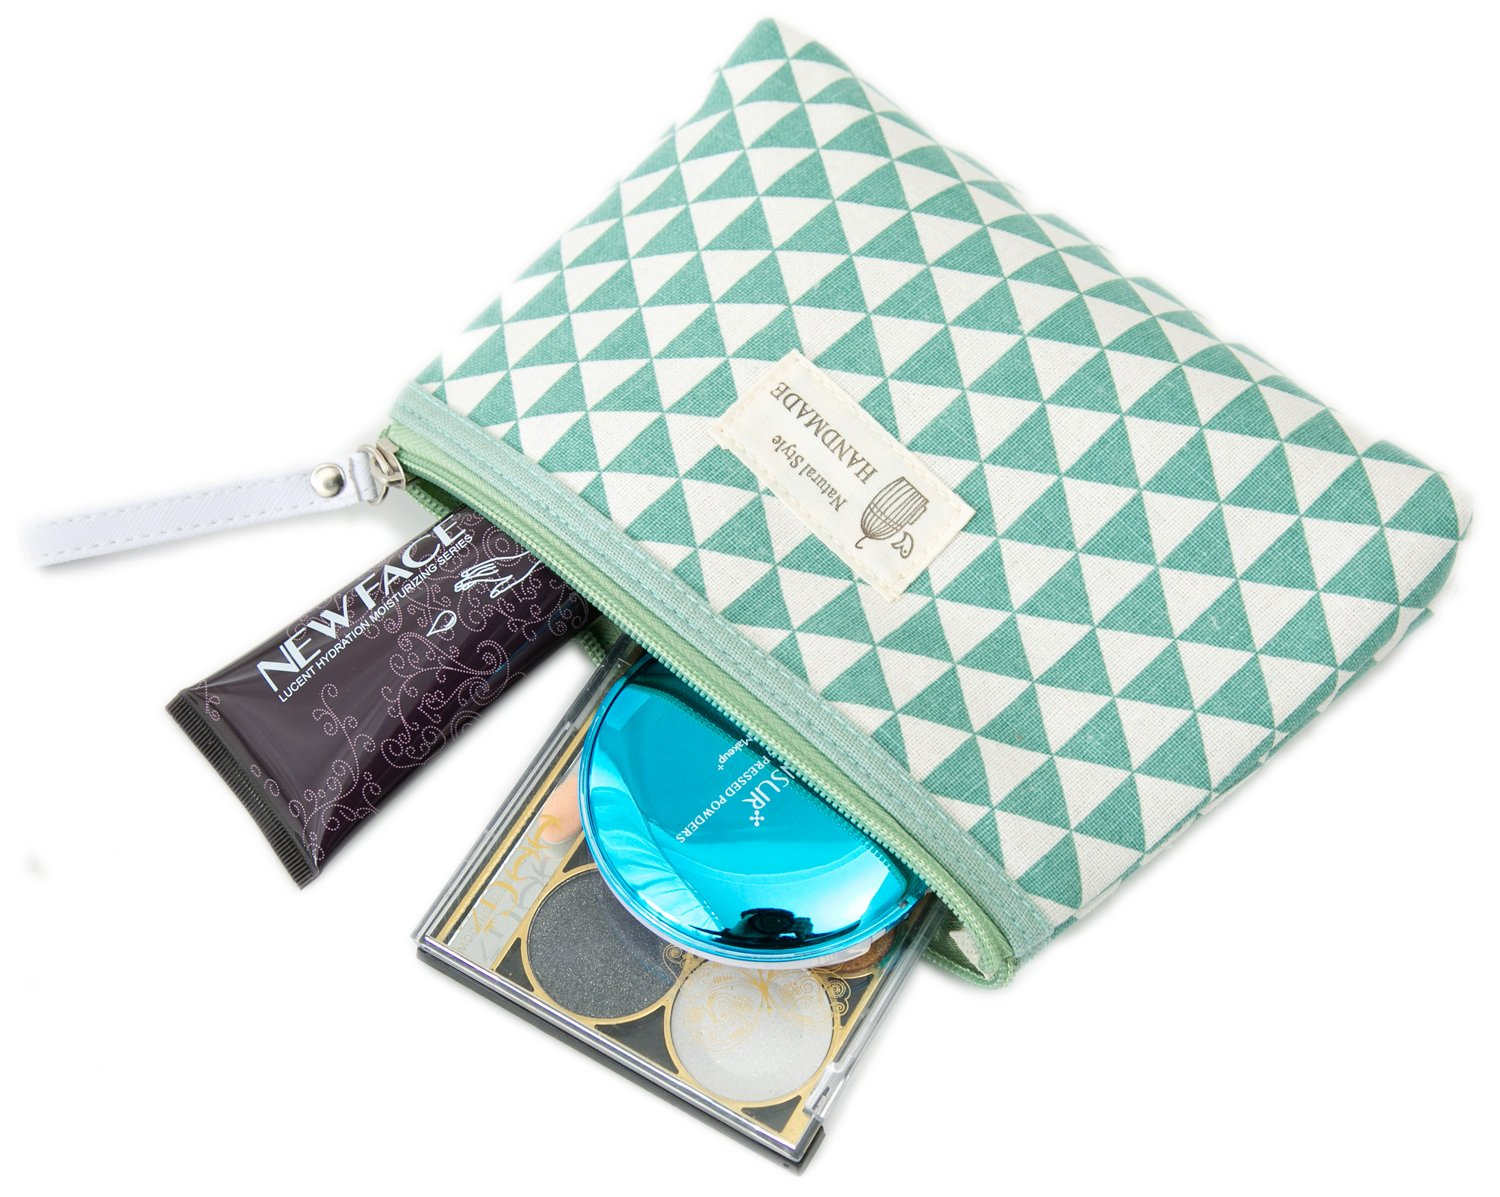 924a5a4a7a57 Amazon.com   Zhoma 3 Piece Cosmetic Bag Set - Makeup Bags And Travel Case -  Mint Green   Beauty